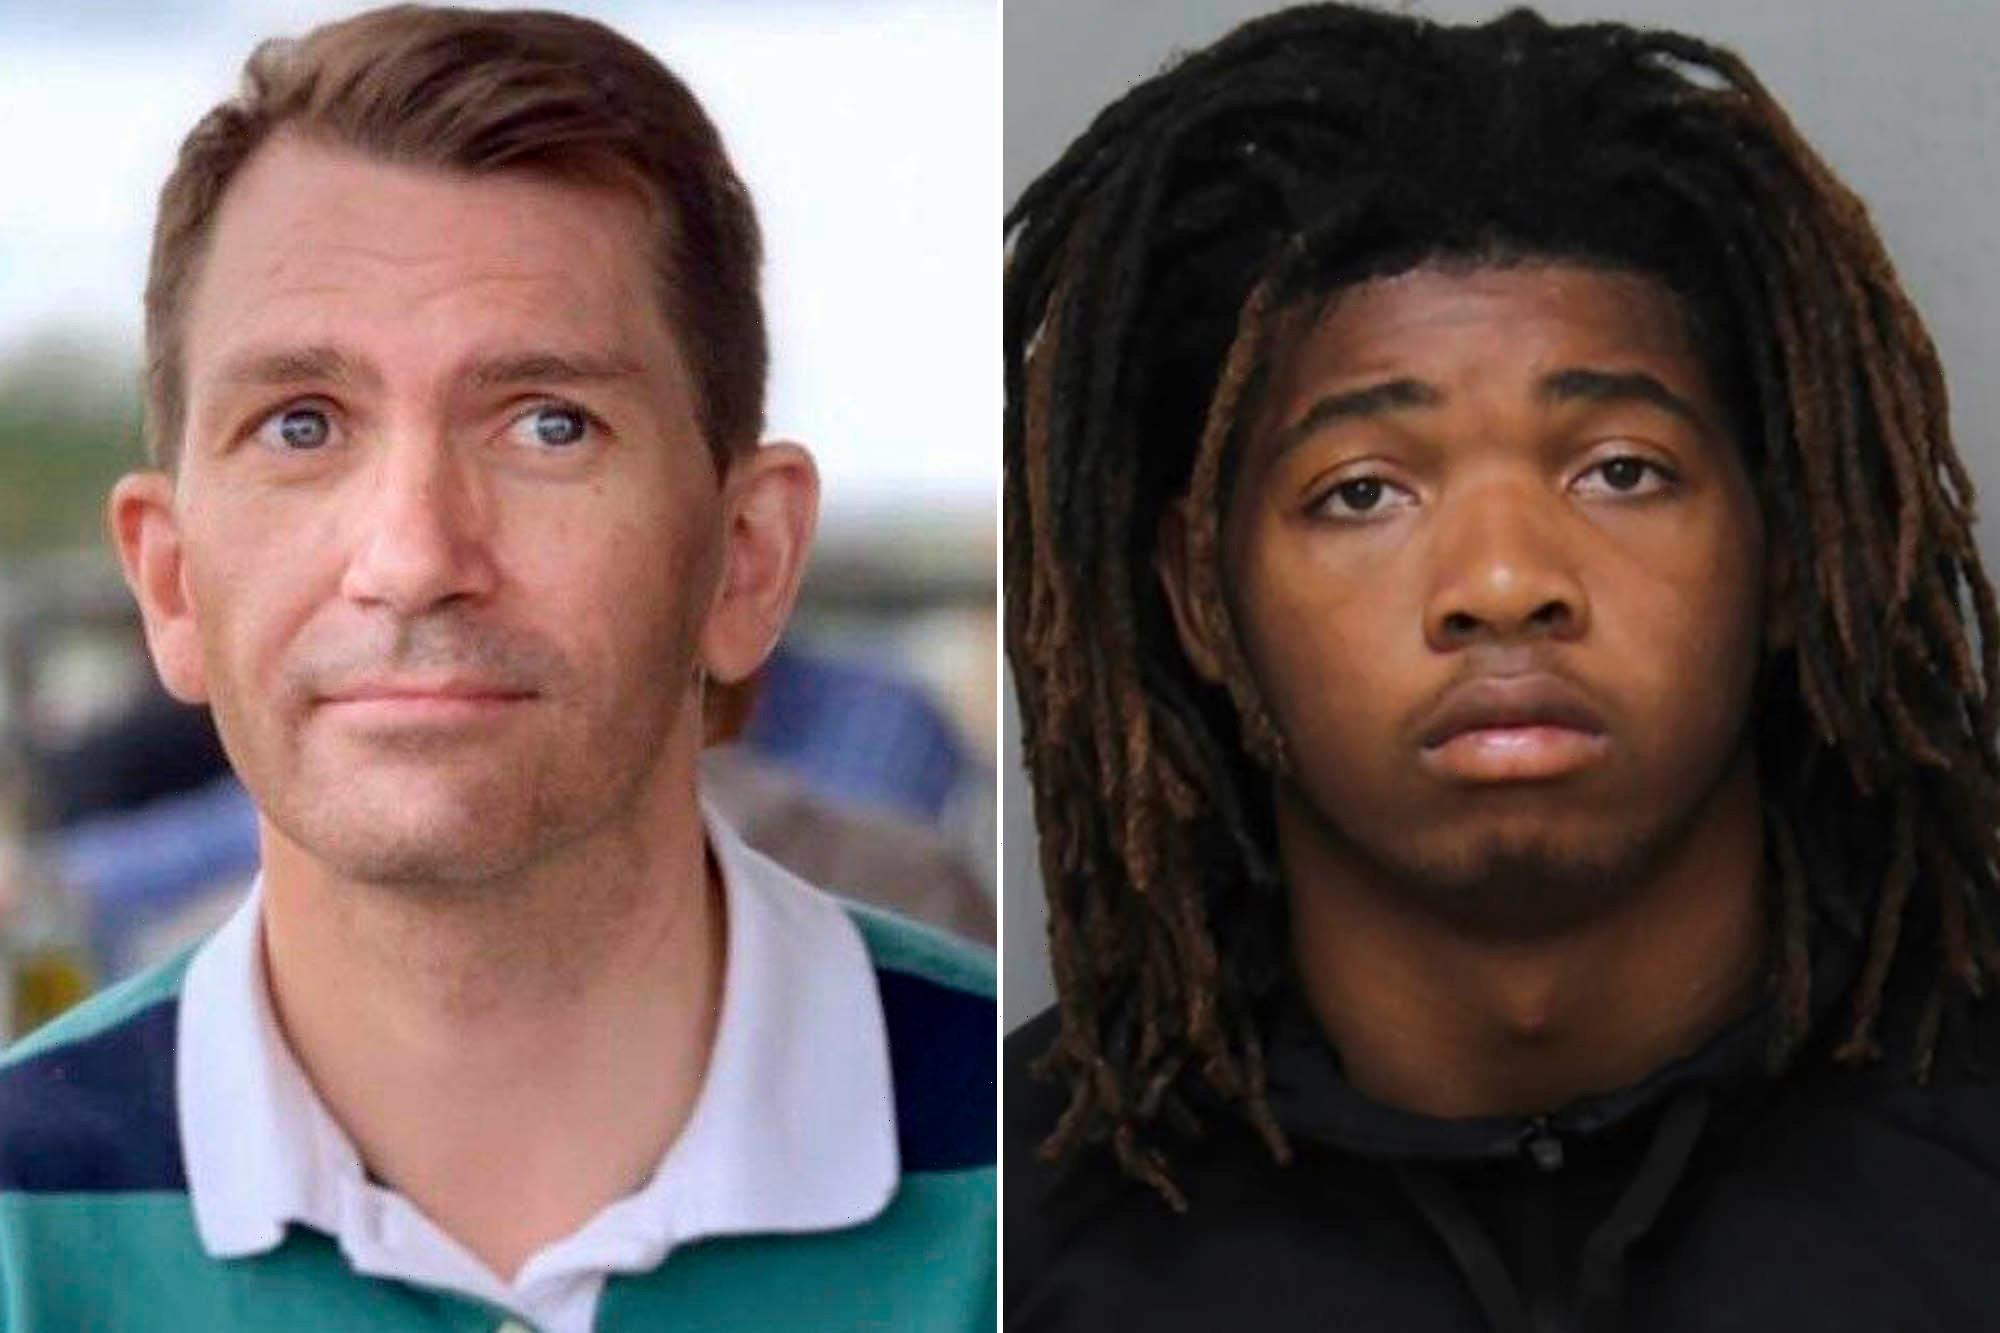 Virginia Tech linebacker accused of beating man to death over Tinder catfishing